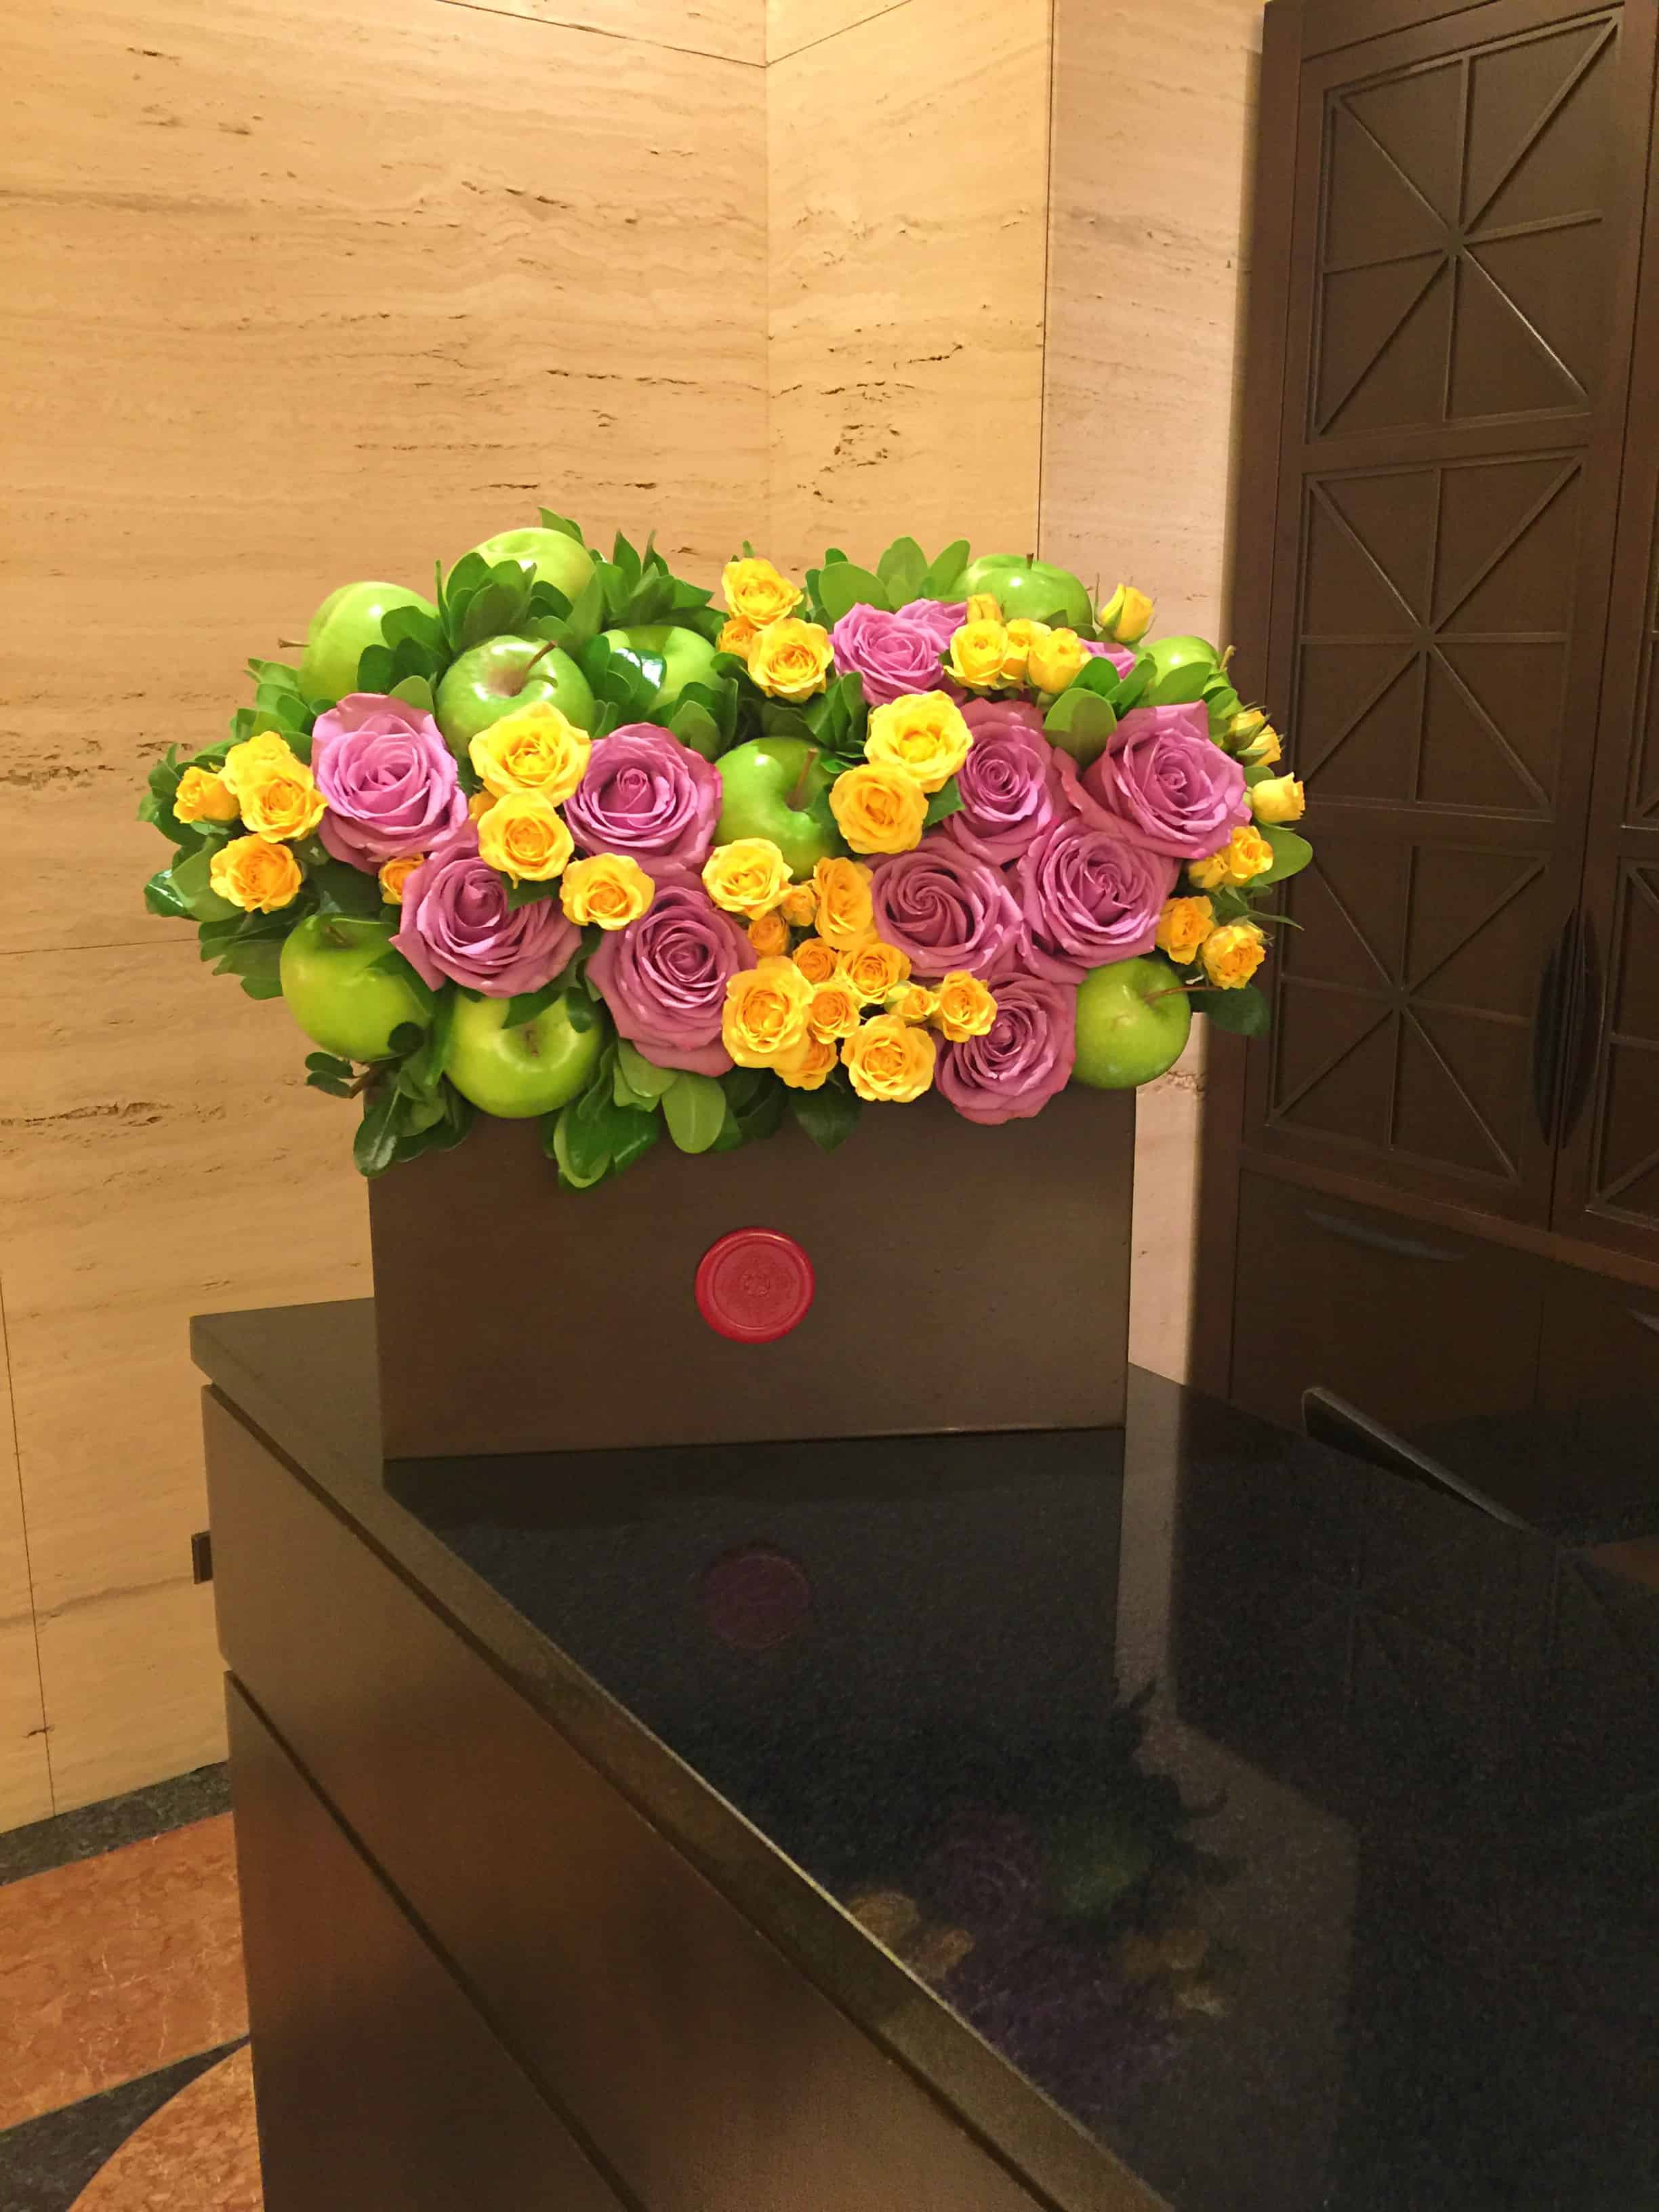 Lavender roses, yellow spray roses, Korean melon, gala melon, green apples and ume fruit